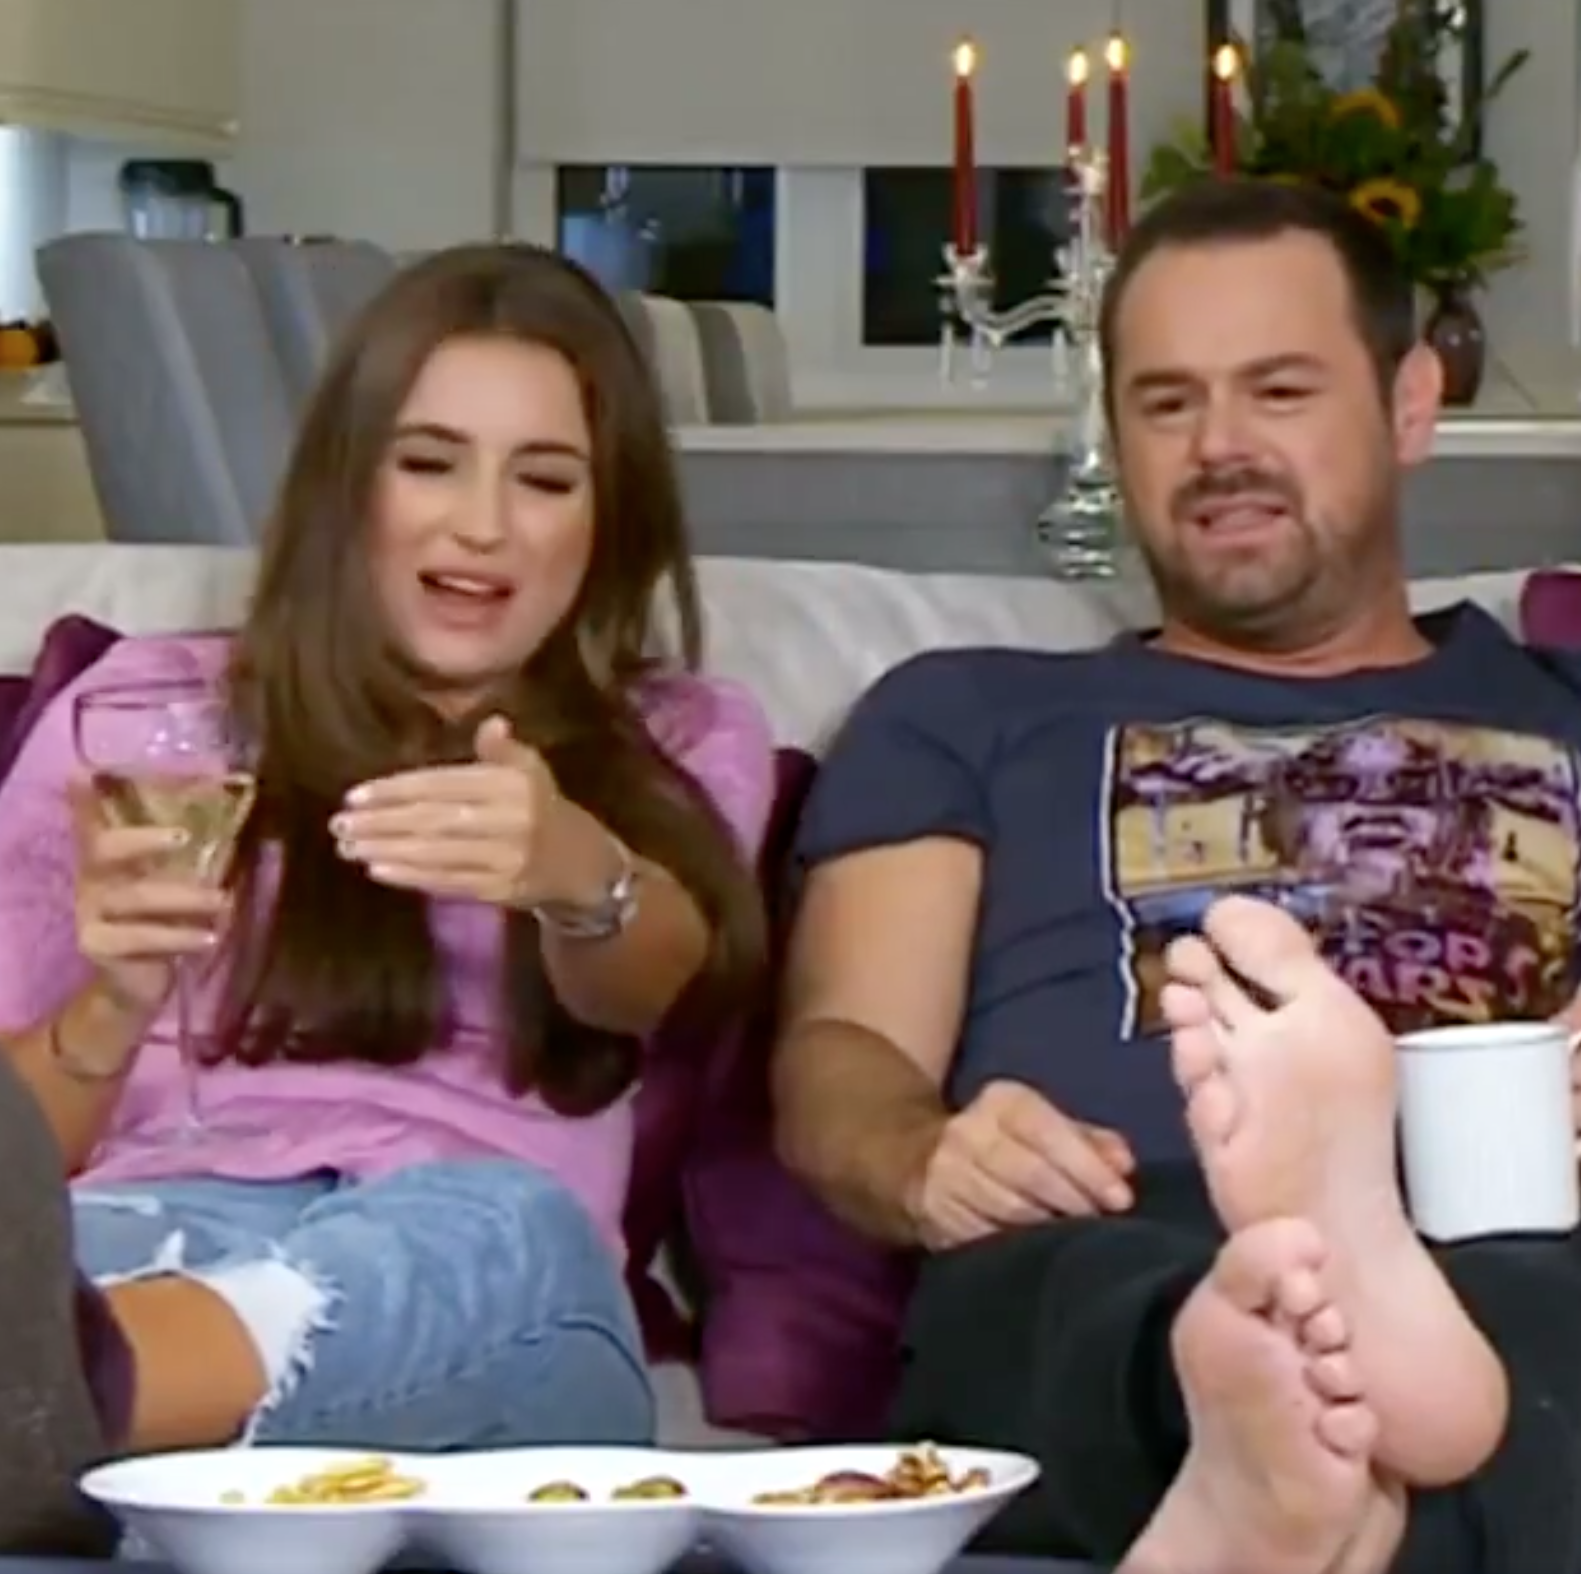 EastEnders star Danny Dyer reveals daughter Dani's secret cameo in lots of episodes